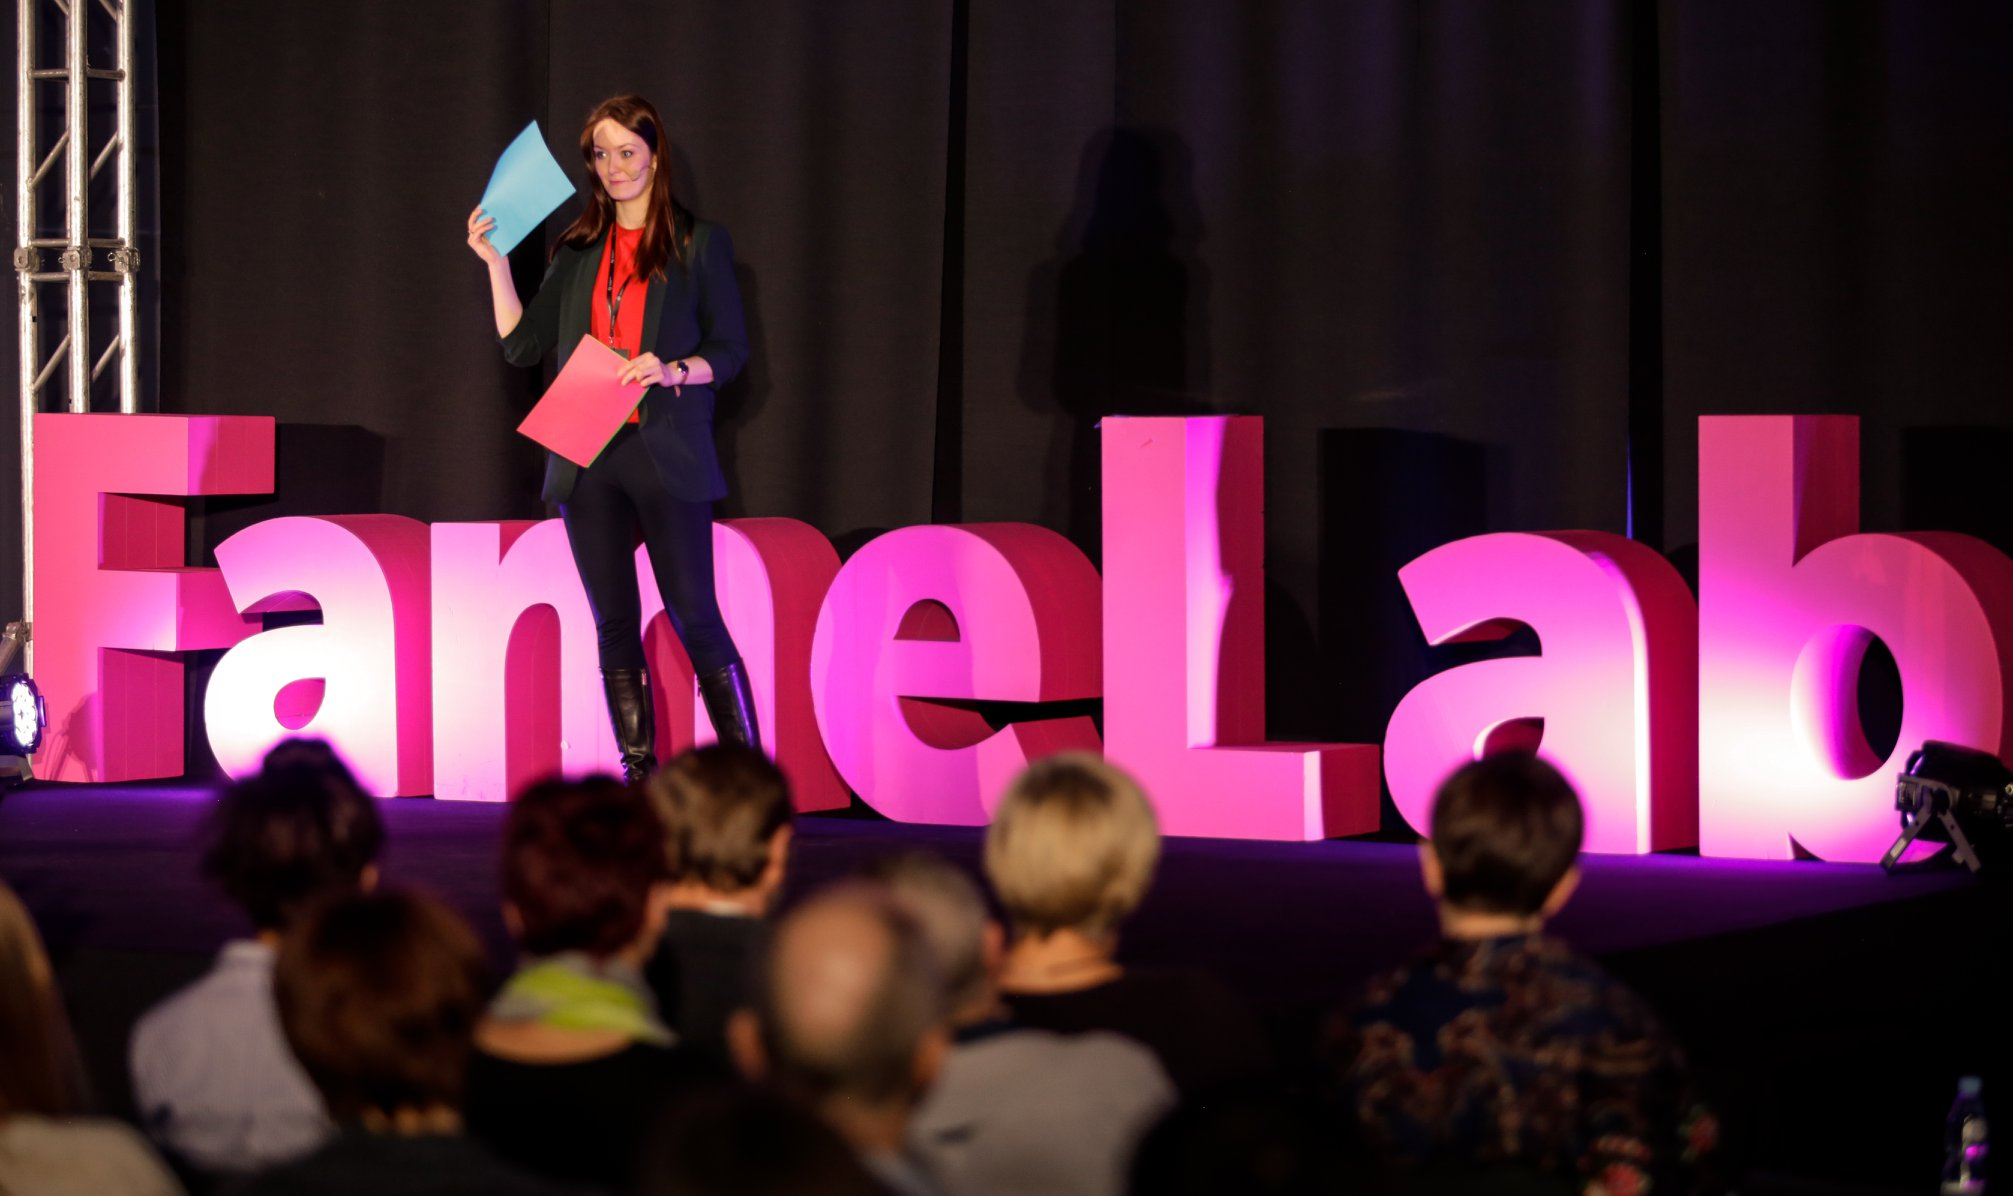 Semi-finalist of the FameLab competition in our group